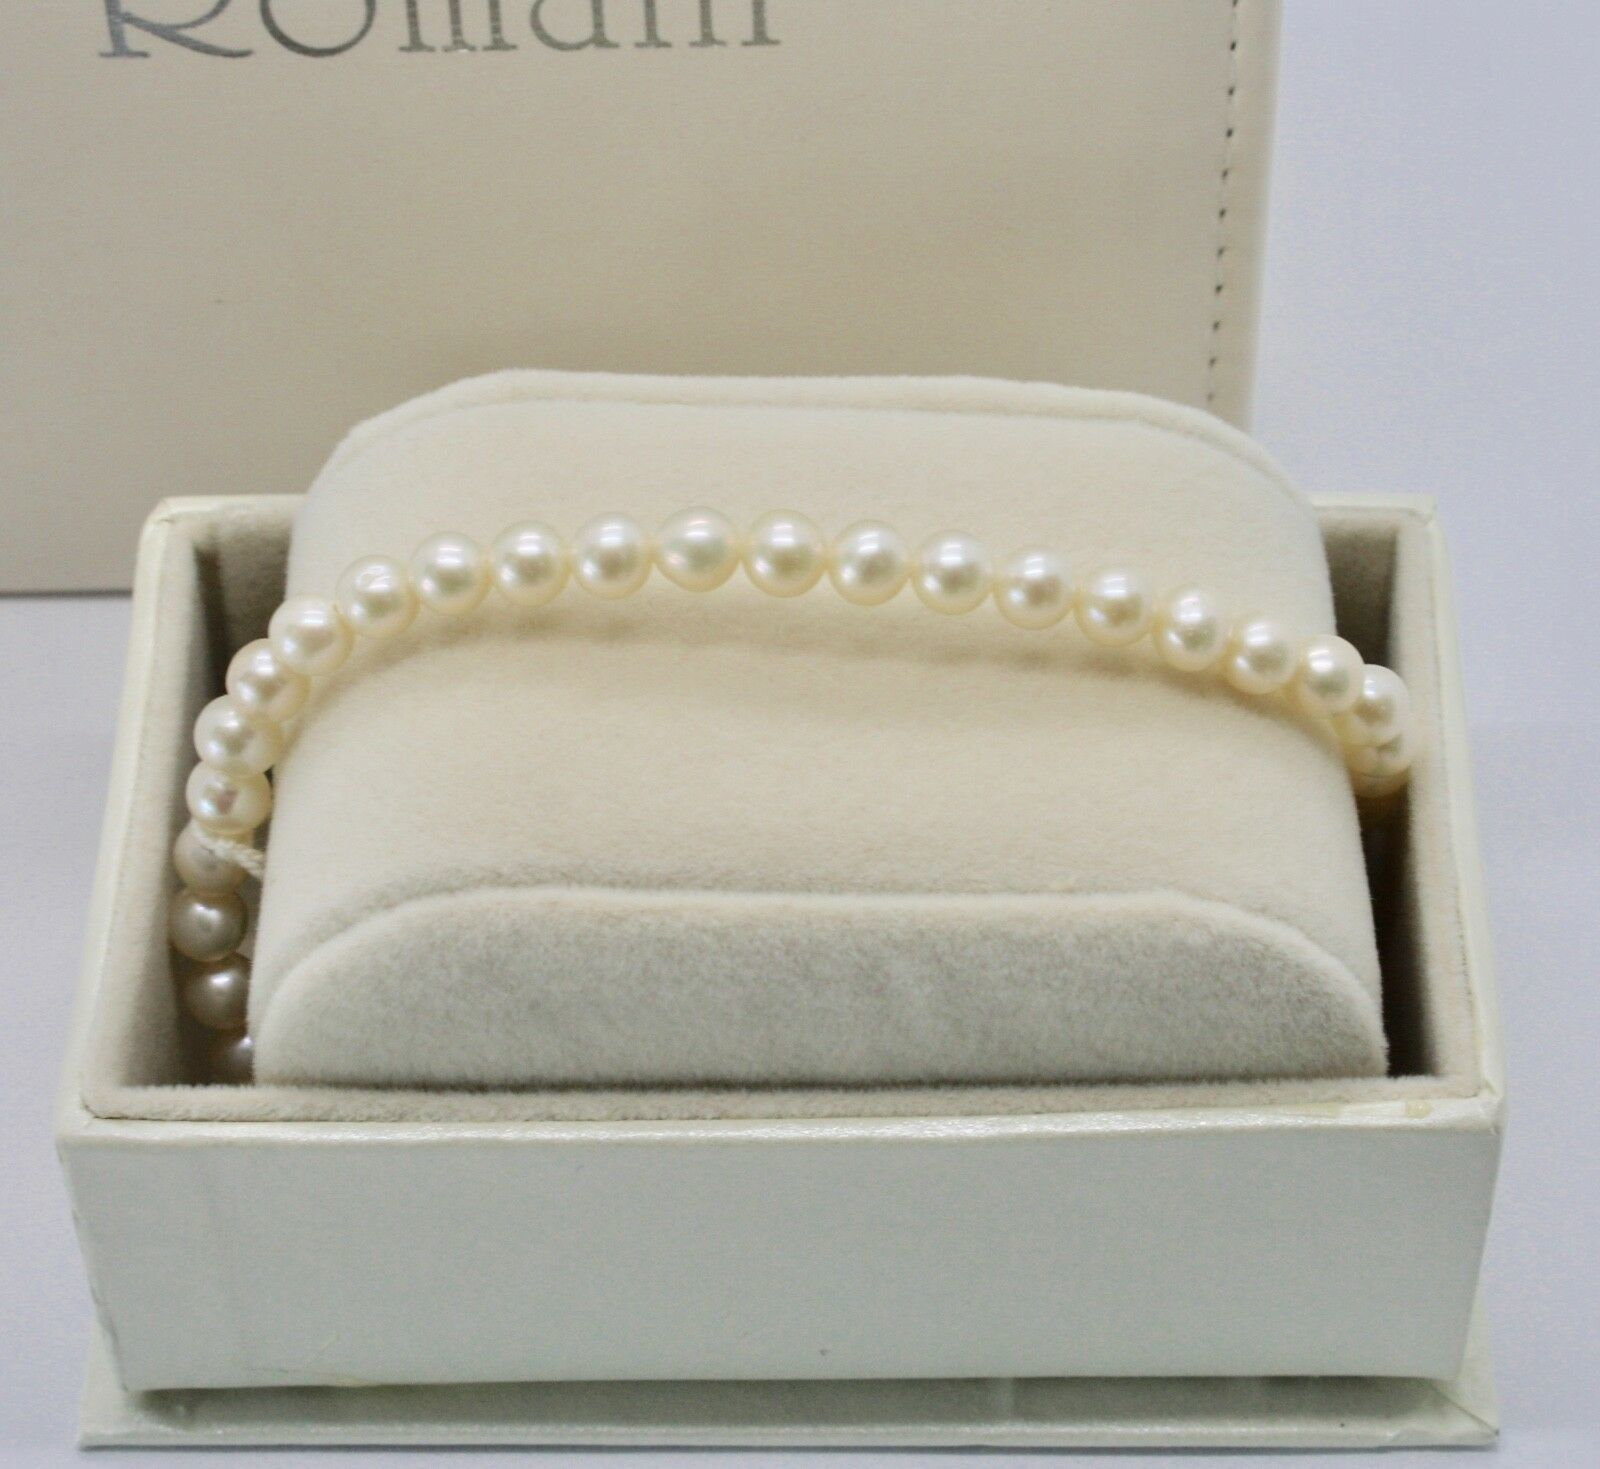 Primary image for White Gold Bracelet 18KT and Silver 925 with Pearls 5.5 6 mm Beautiful Box